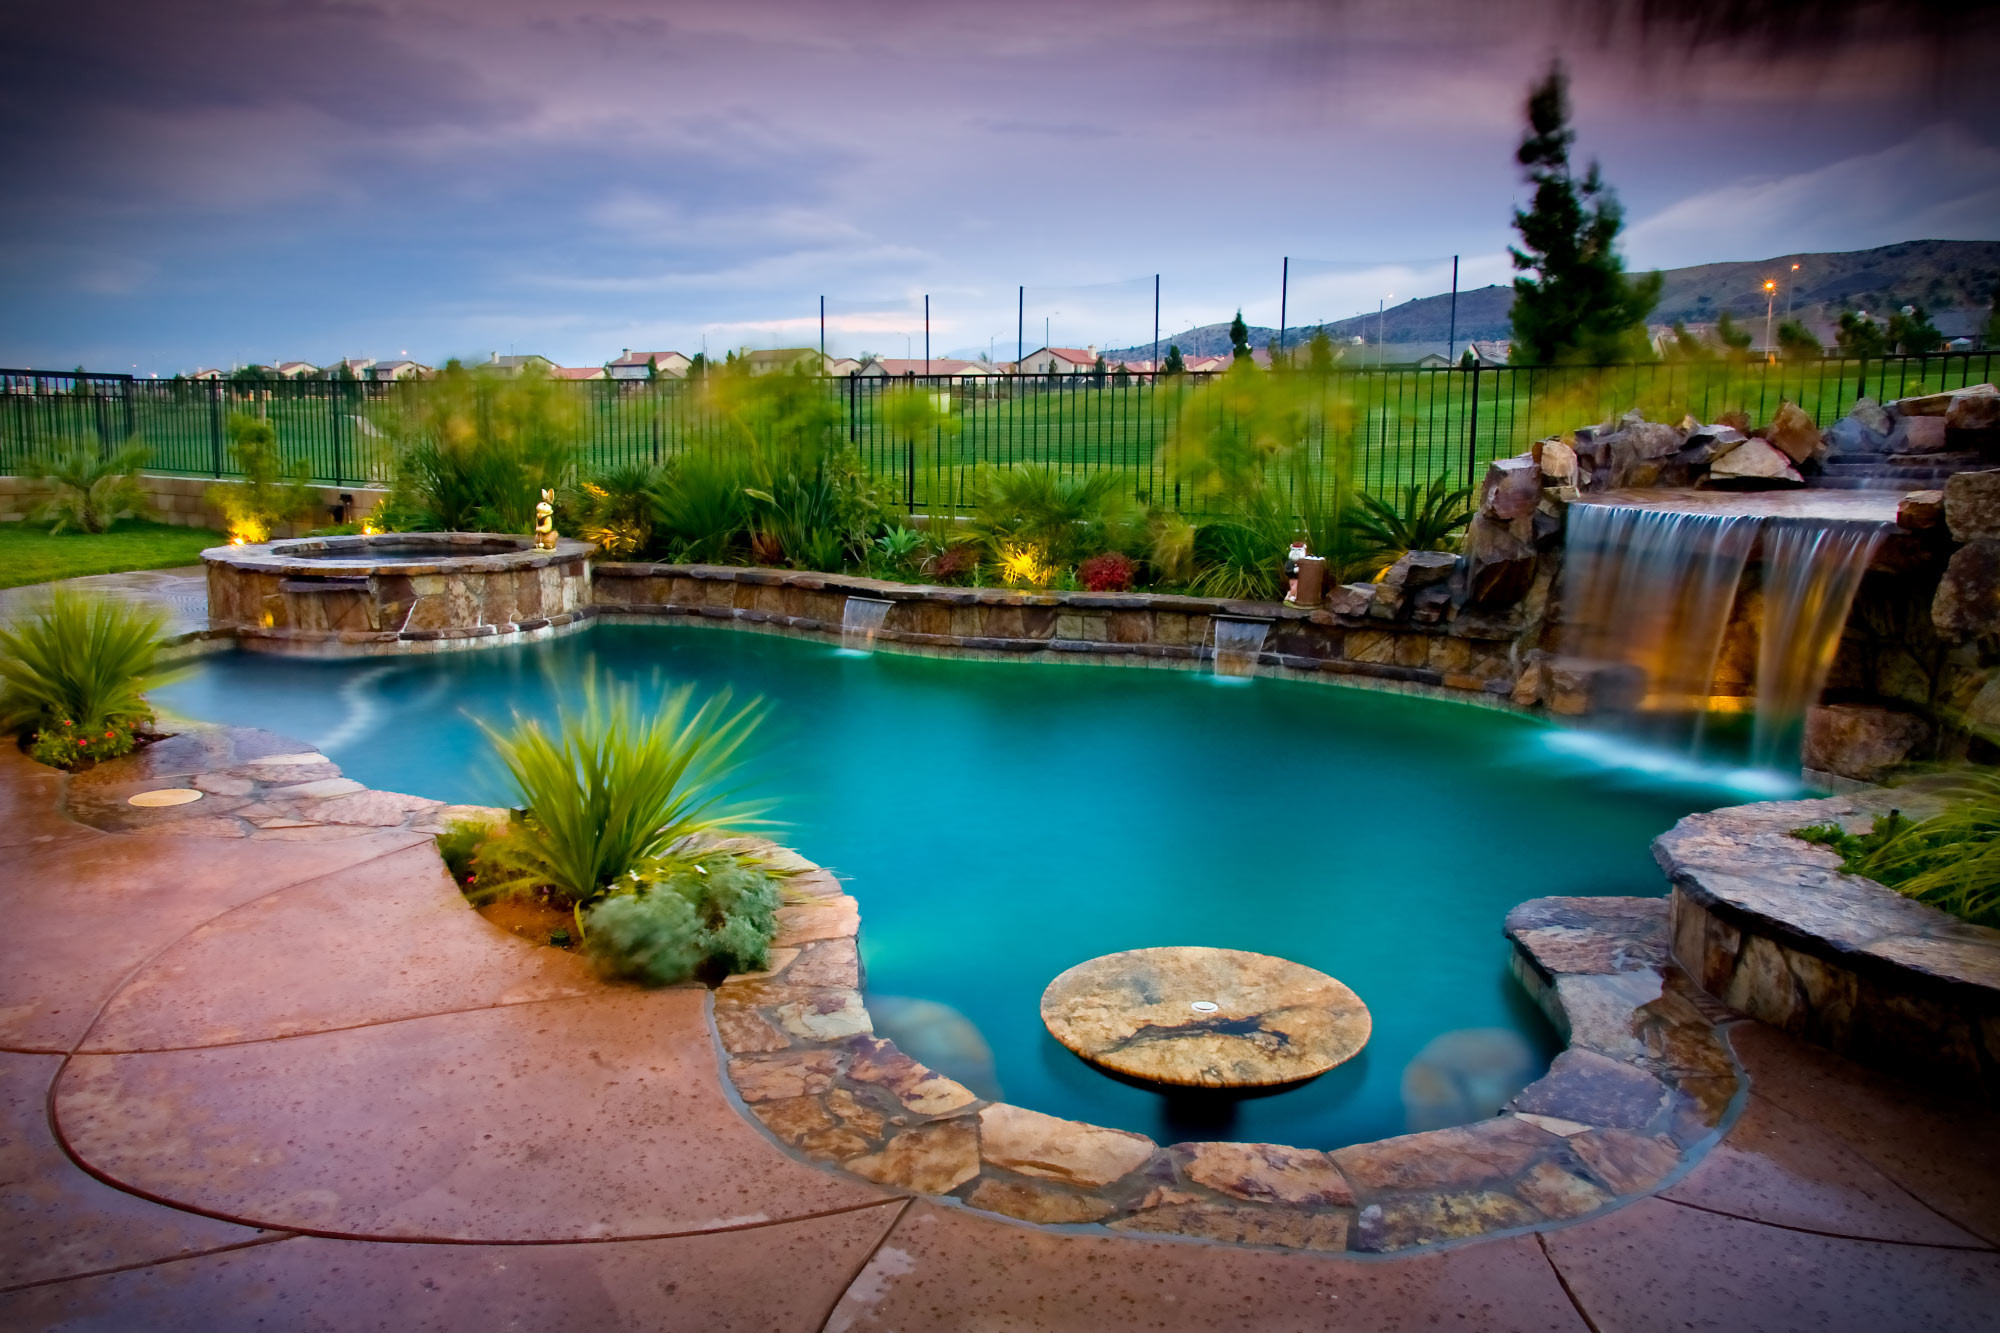 Pool Images Backyard  Create a Serene Backyard Oasis With an In Ground Pool